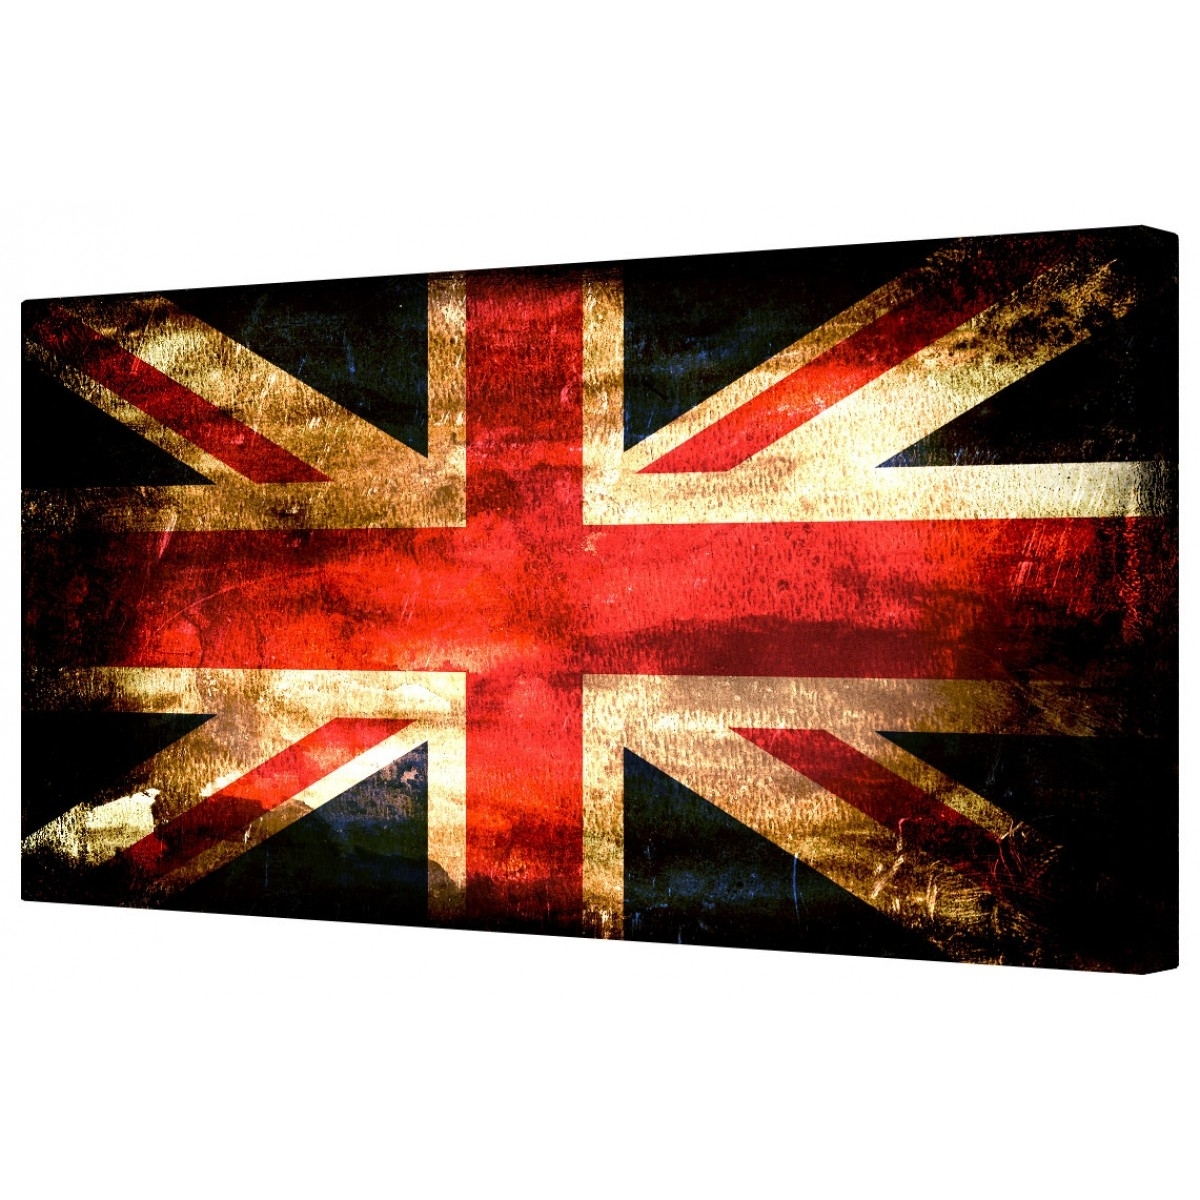 Canvart | Retro Union Jack Flag Framed Canvas Wall Art Picture Regarding Most Up To Date Union Jack Canvas Wall Art (View 3 of 15)